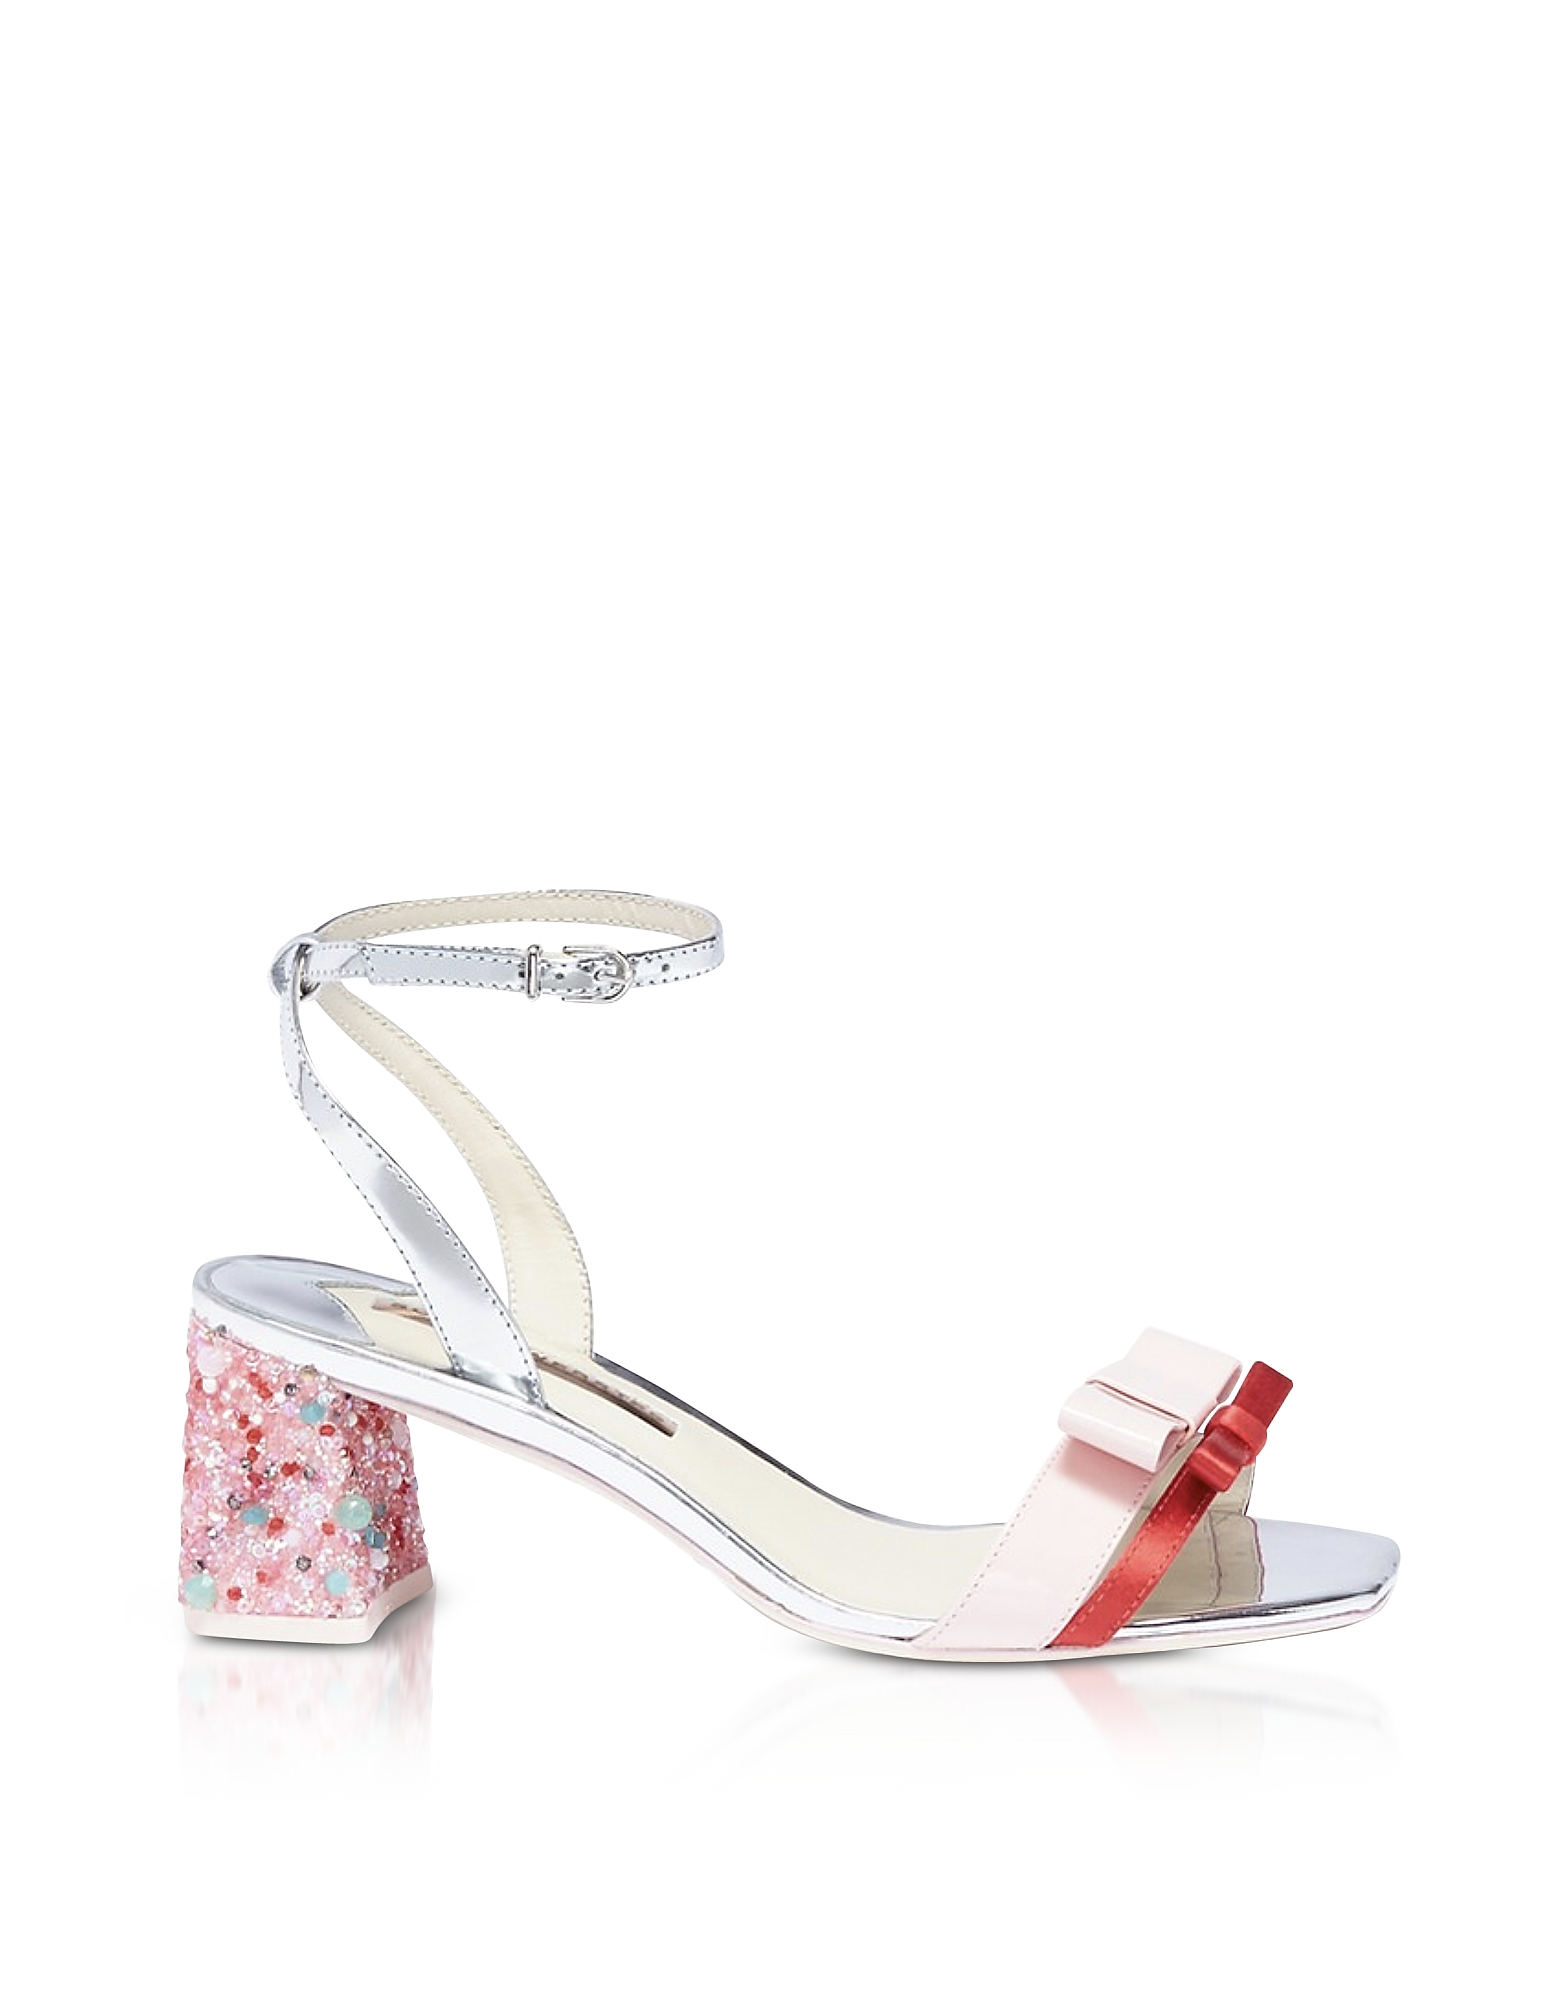 Red Satin and Pink Leather Andie Mid Heel Sandals